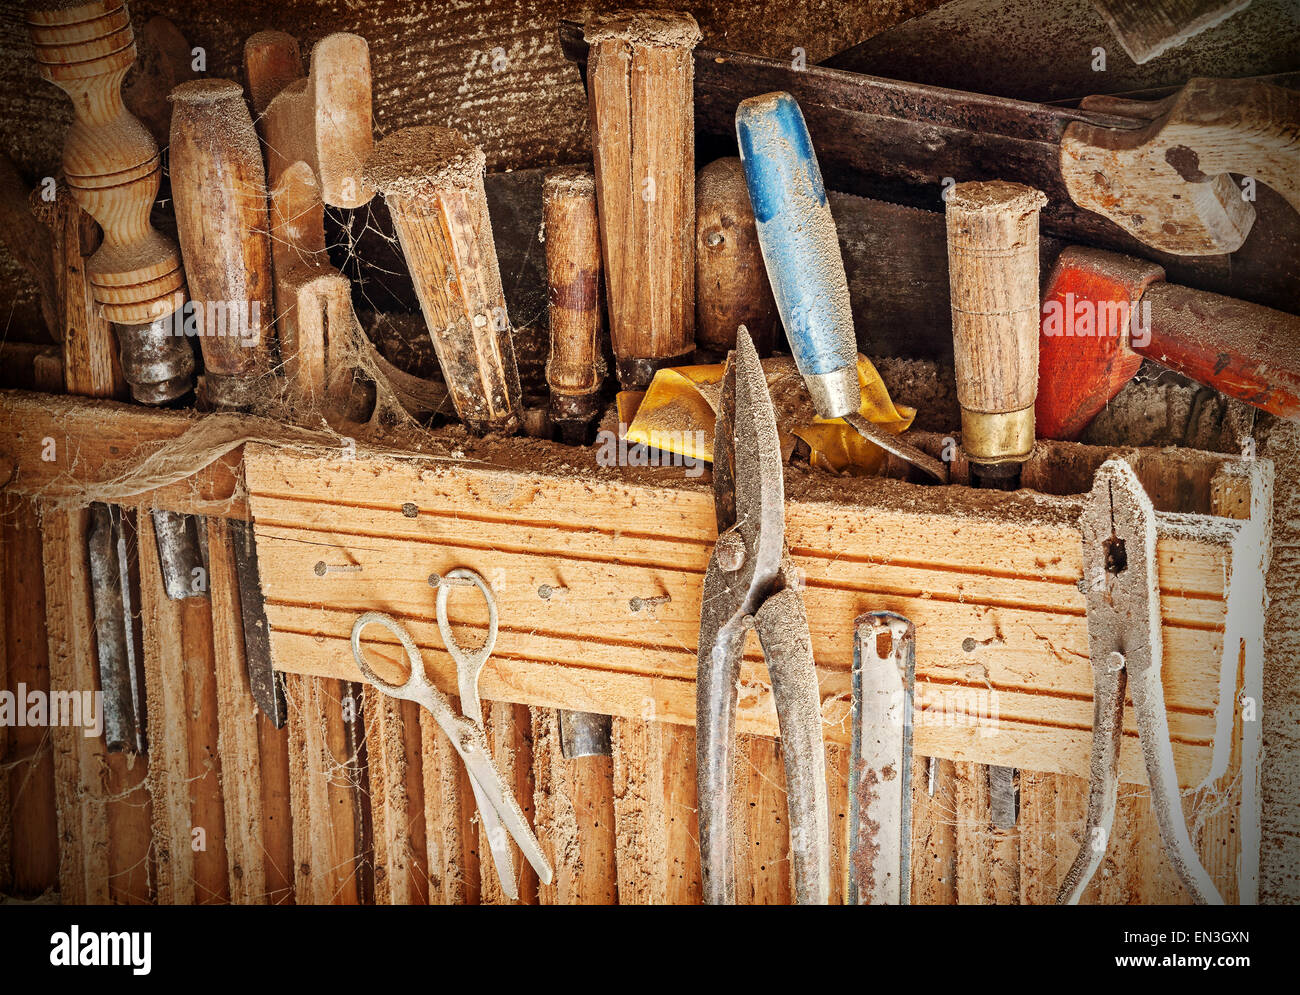 Retro filtered background made of old rusty woodworking tools. - Stock Image